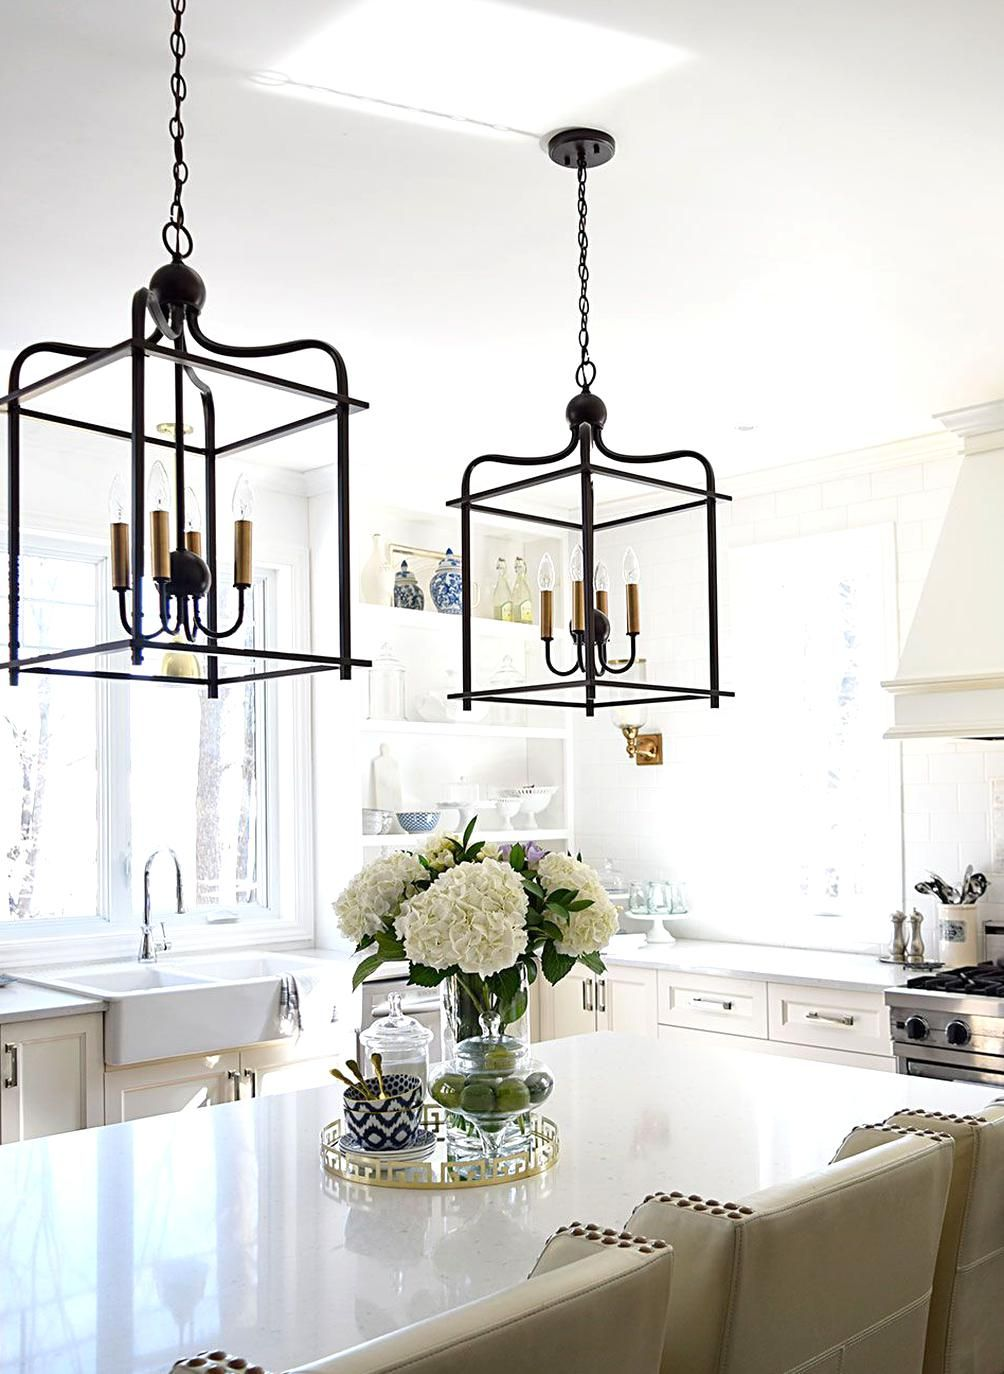 Bright and airy kitchen with twotone lantern style